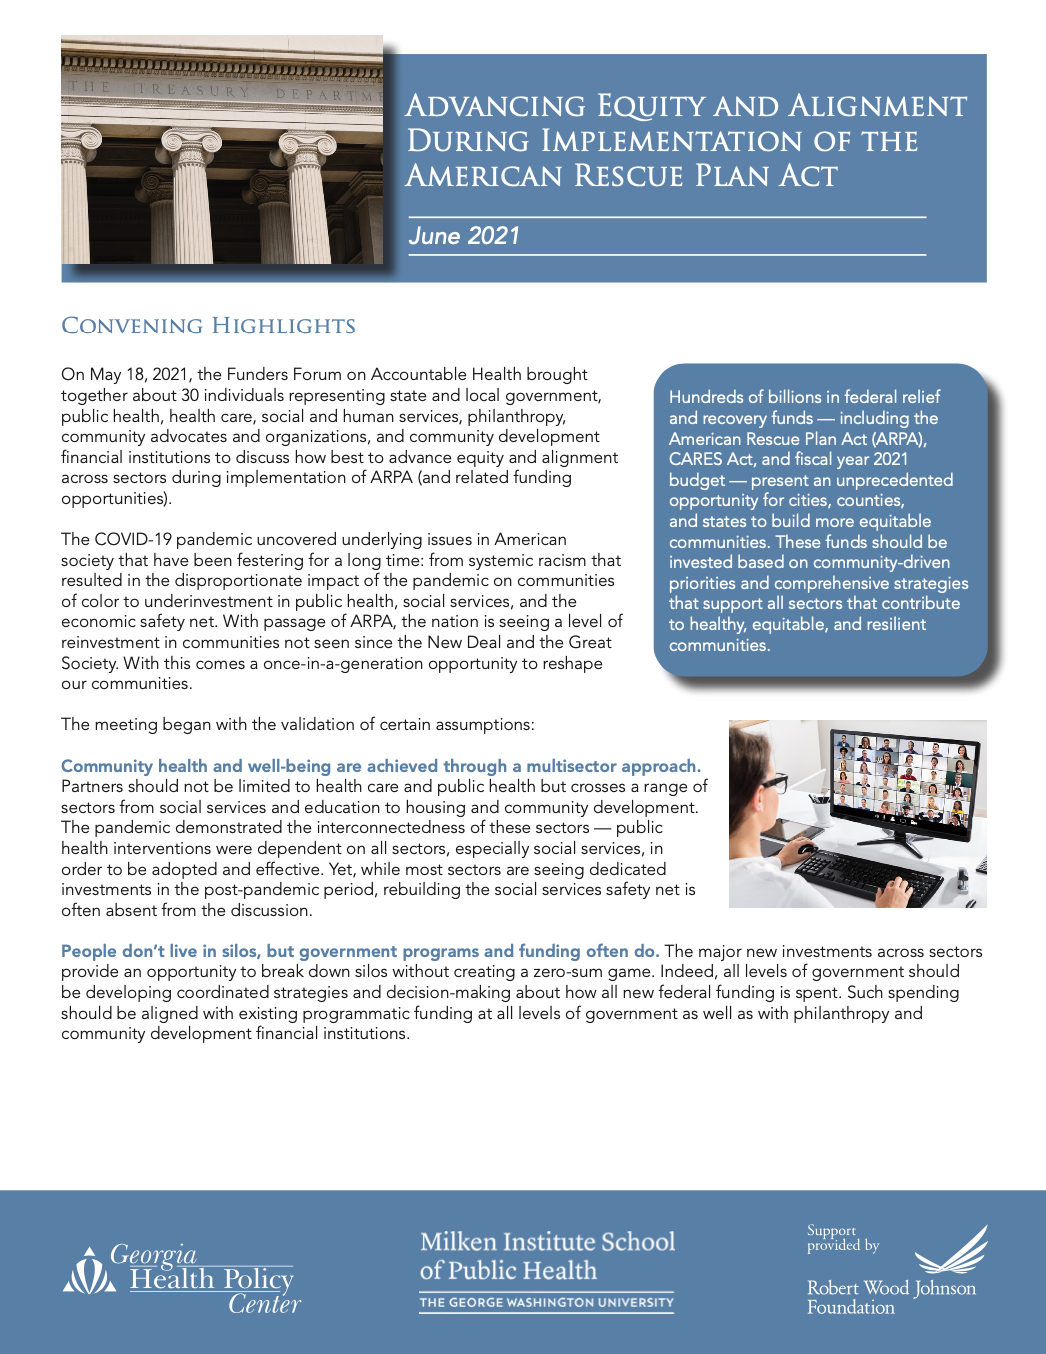 Advancing Equity and Alignment During Implementation of the American Rescue Plan Act